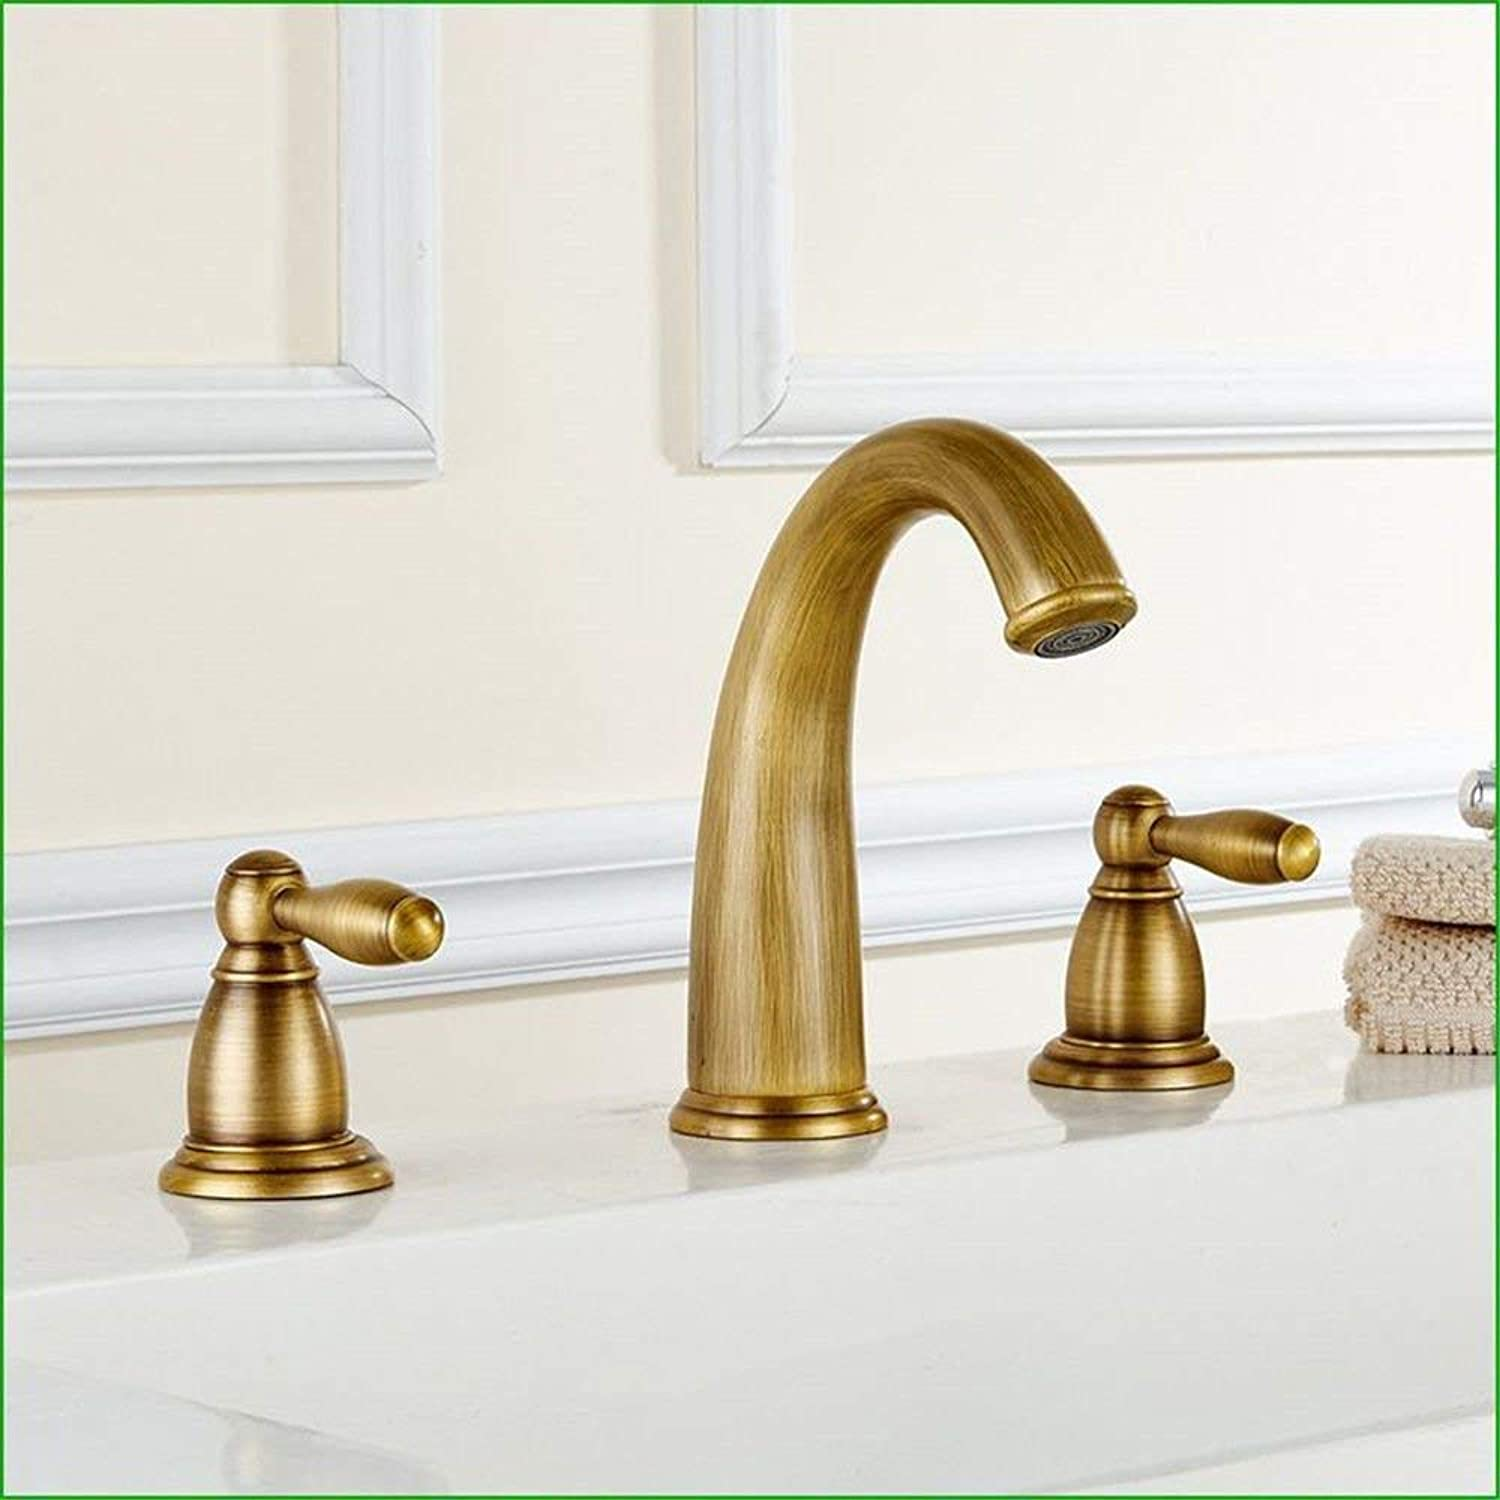 Oudan Kitchen mixer faucets solid brass kitchen sink basin mixer tap two handle tap mixer taps (color   -, Size   -)